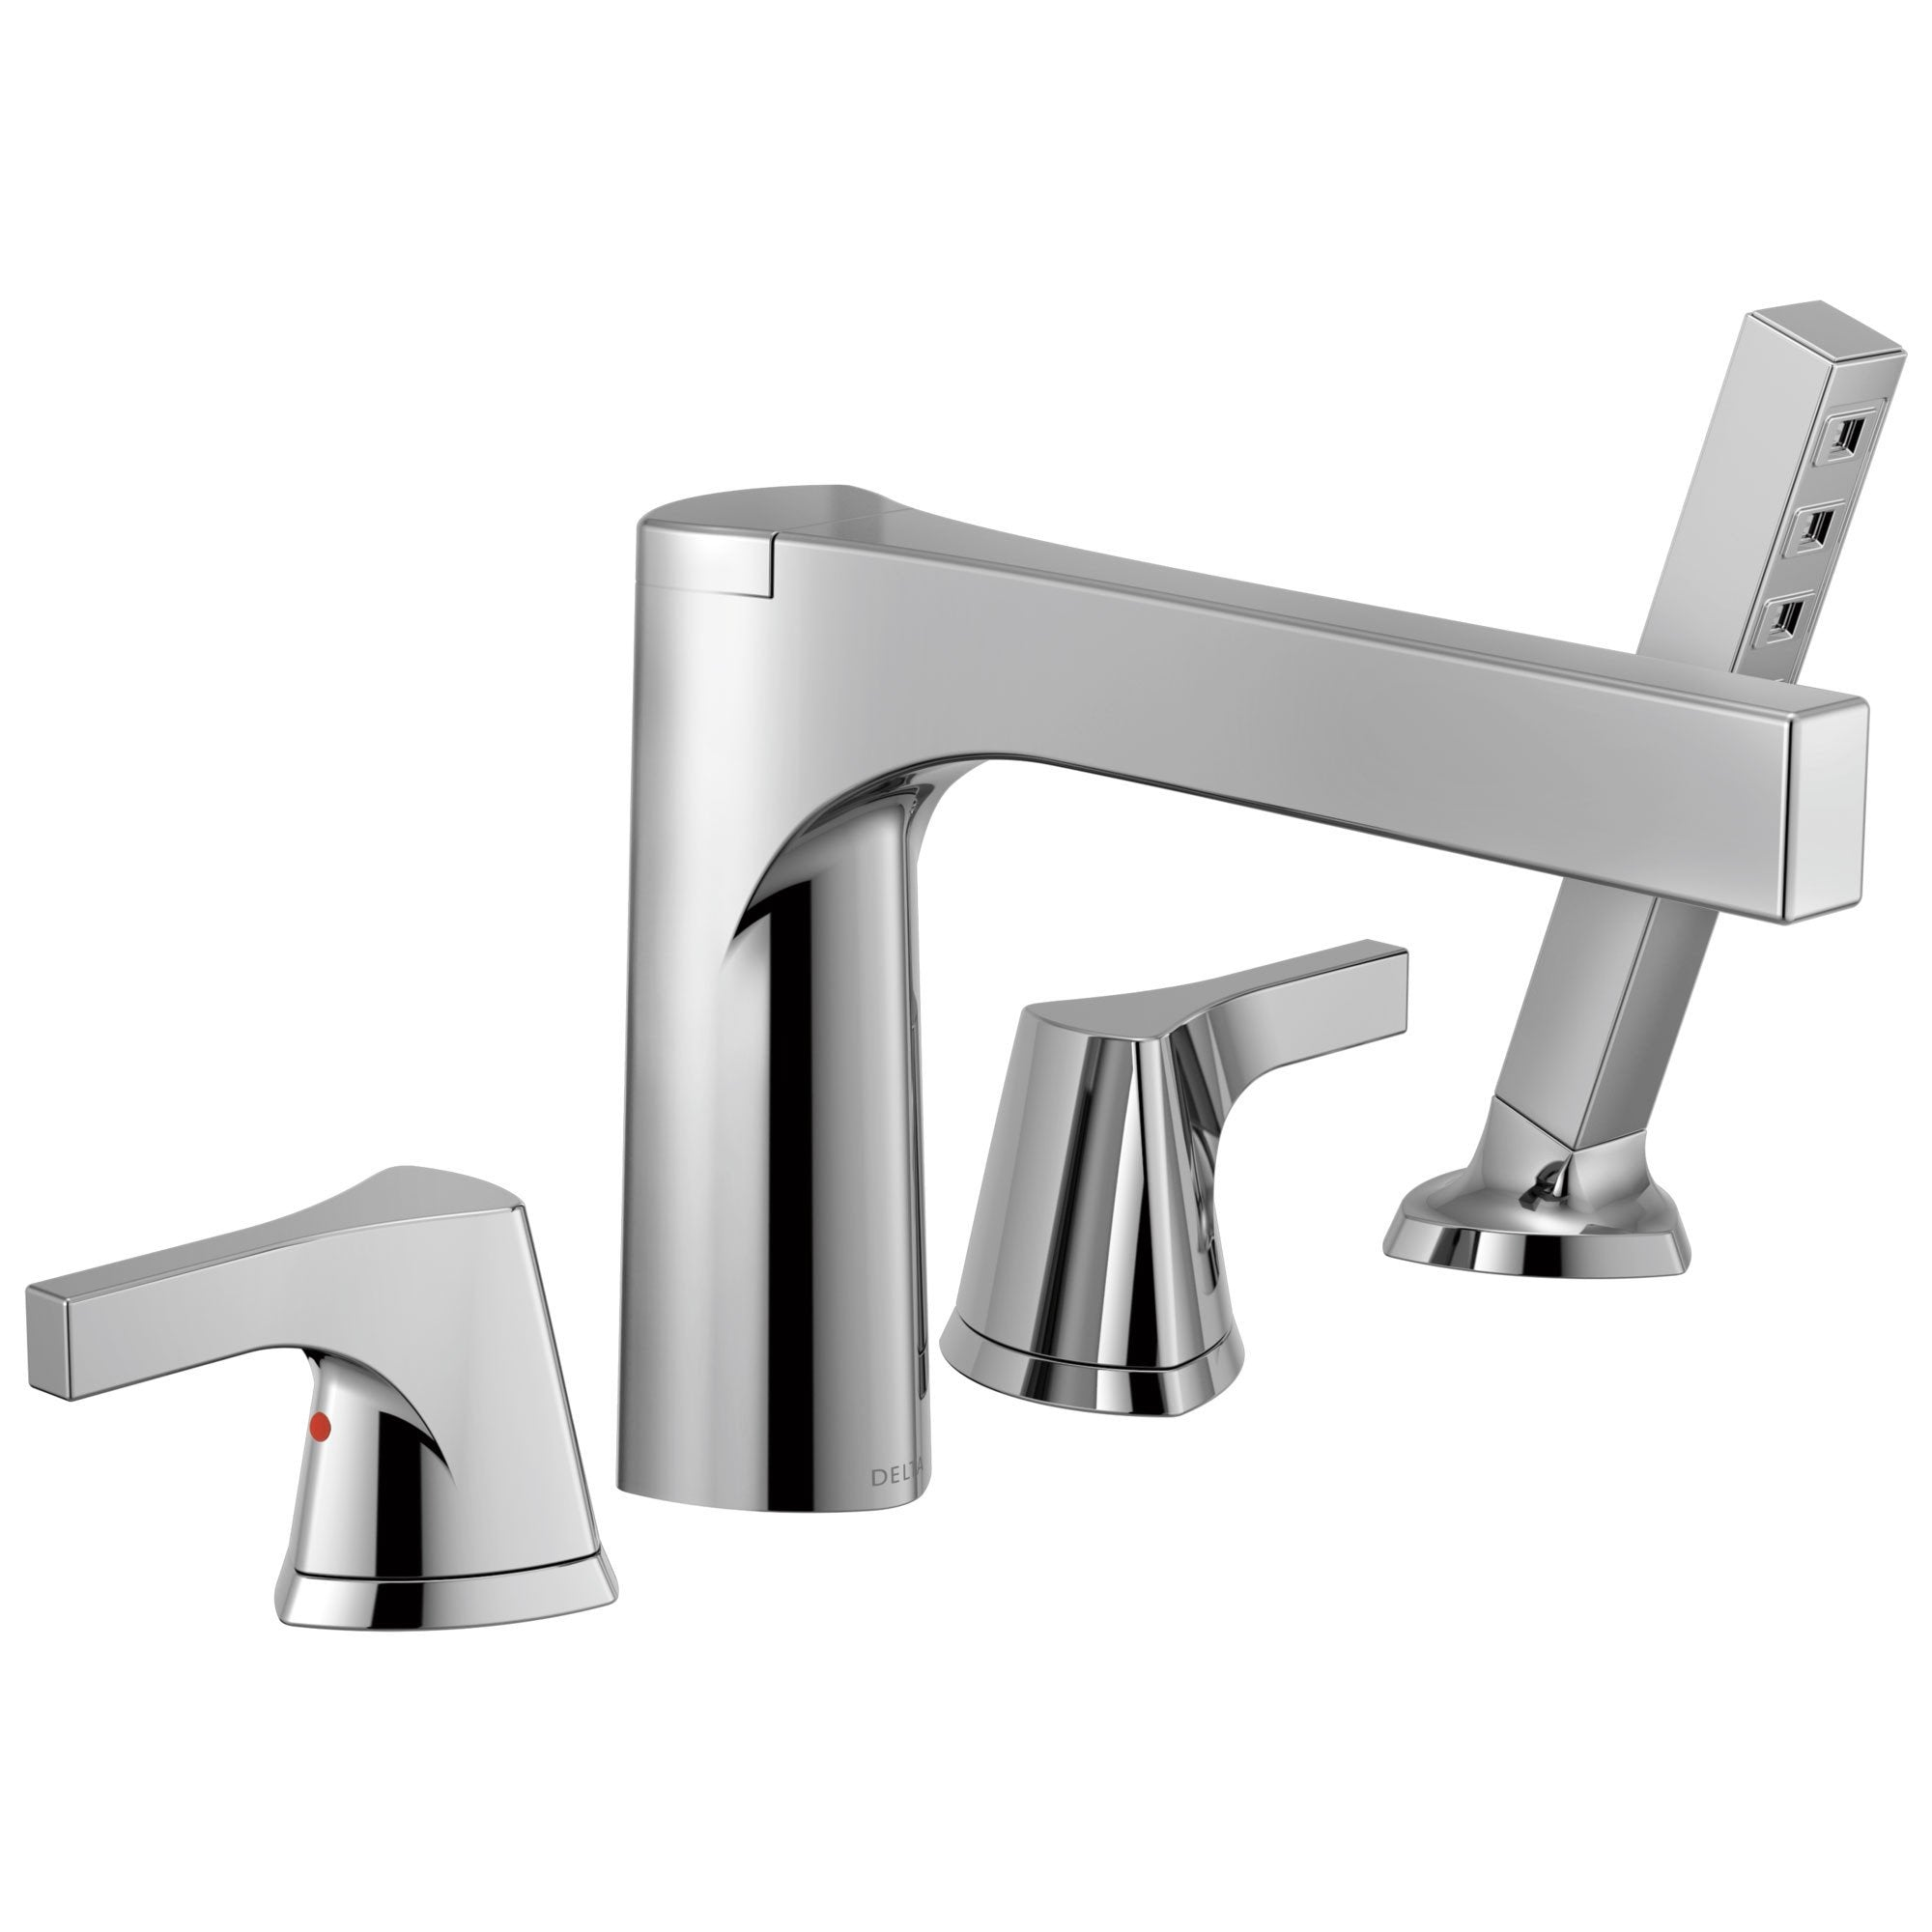 delta zura collection chrome finish 4hole roman tub filler faucet with hand shower trim